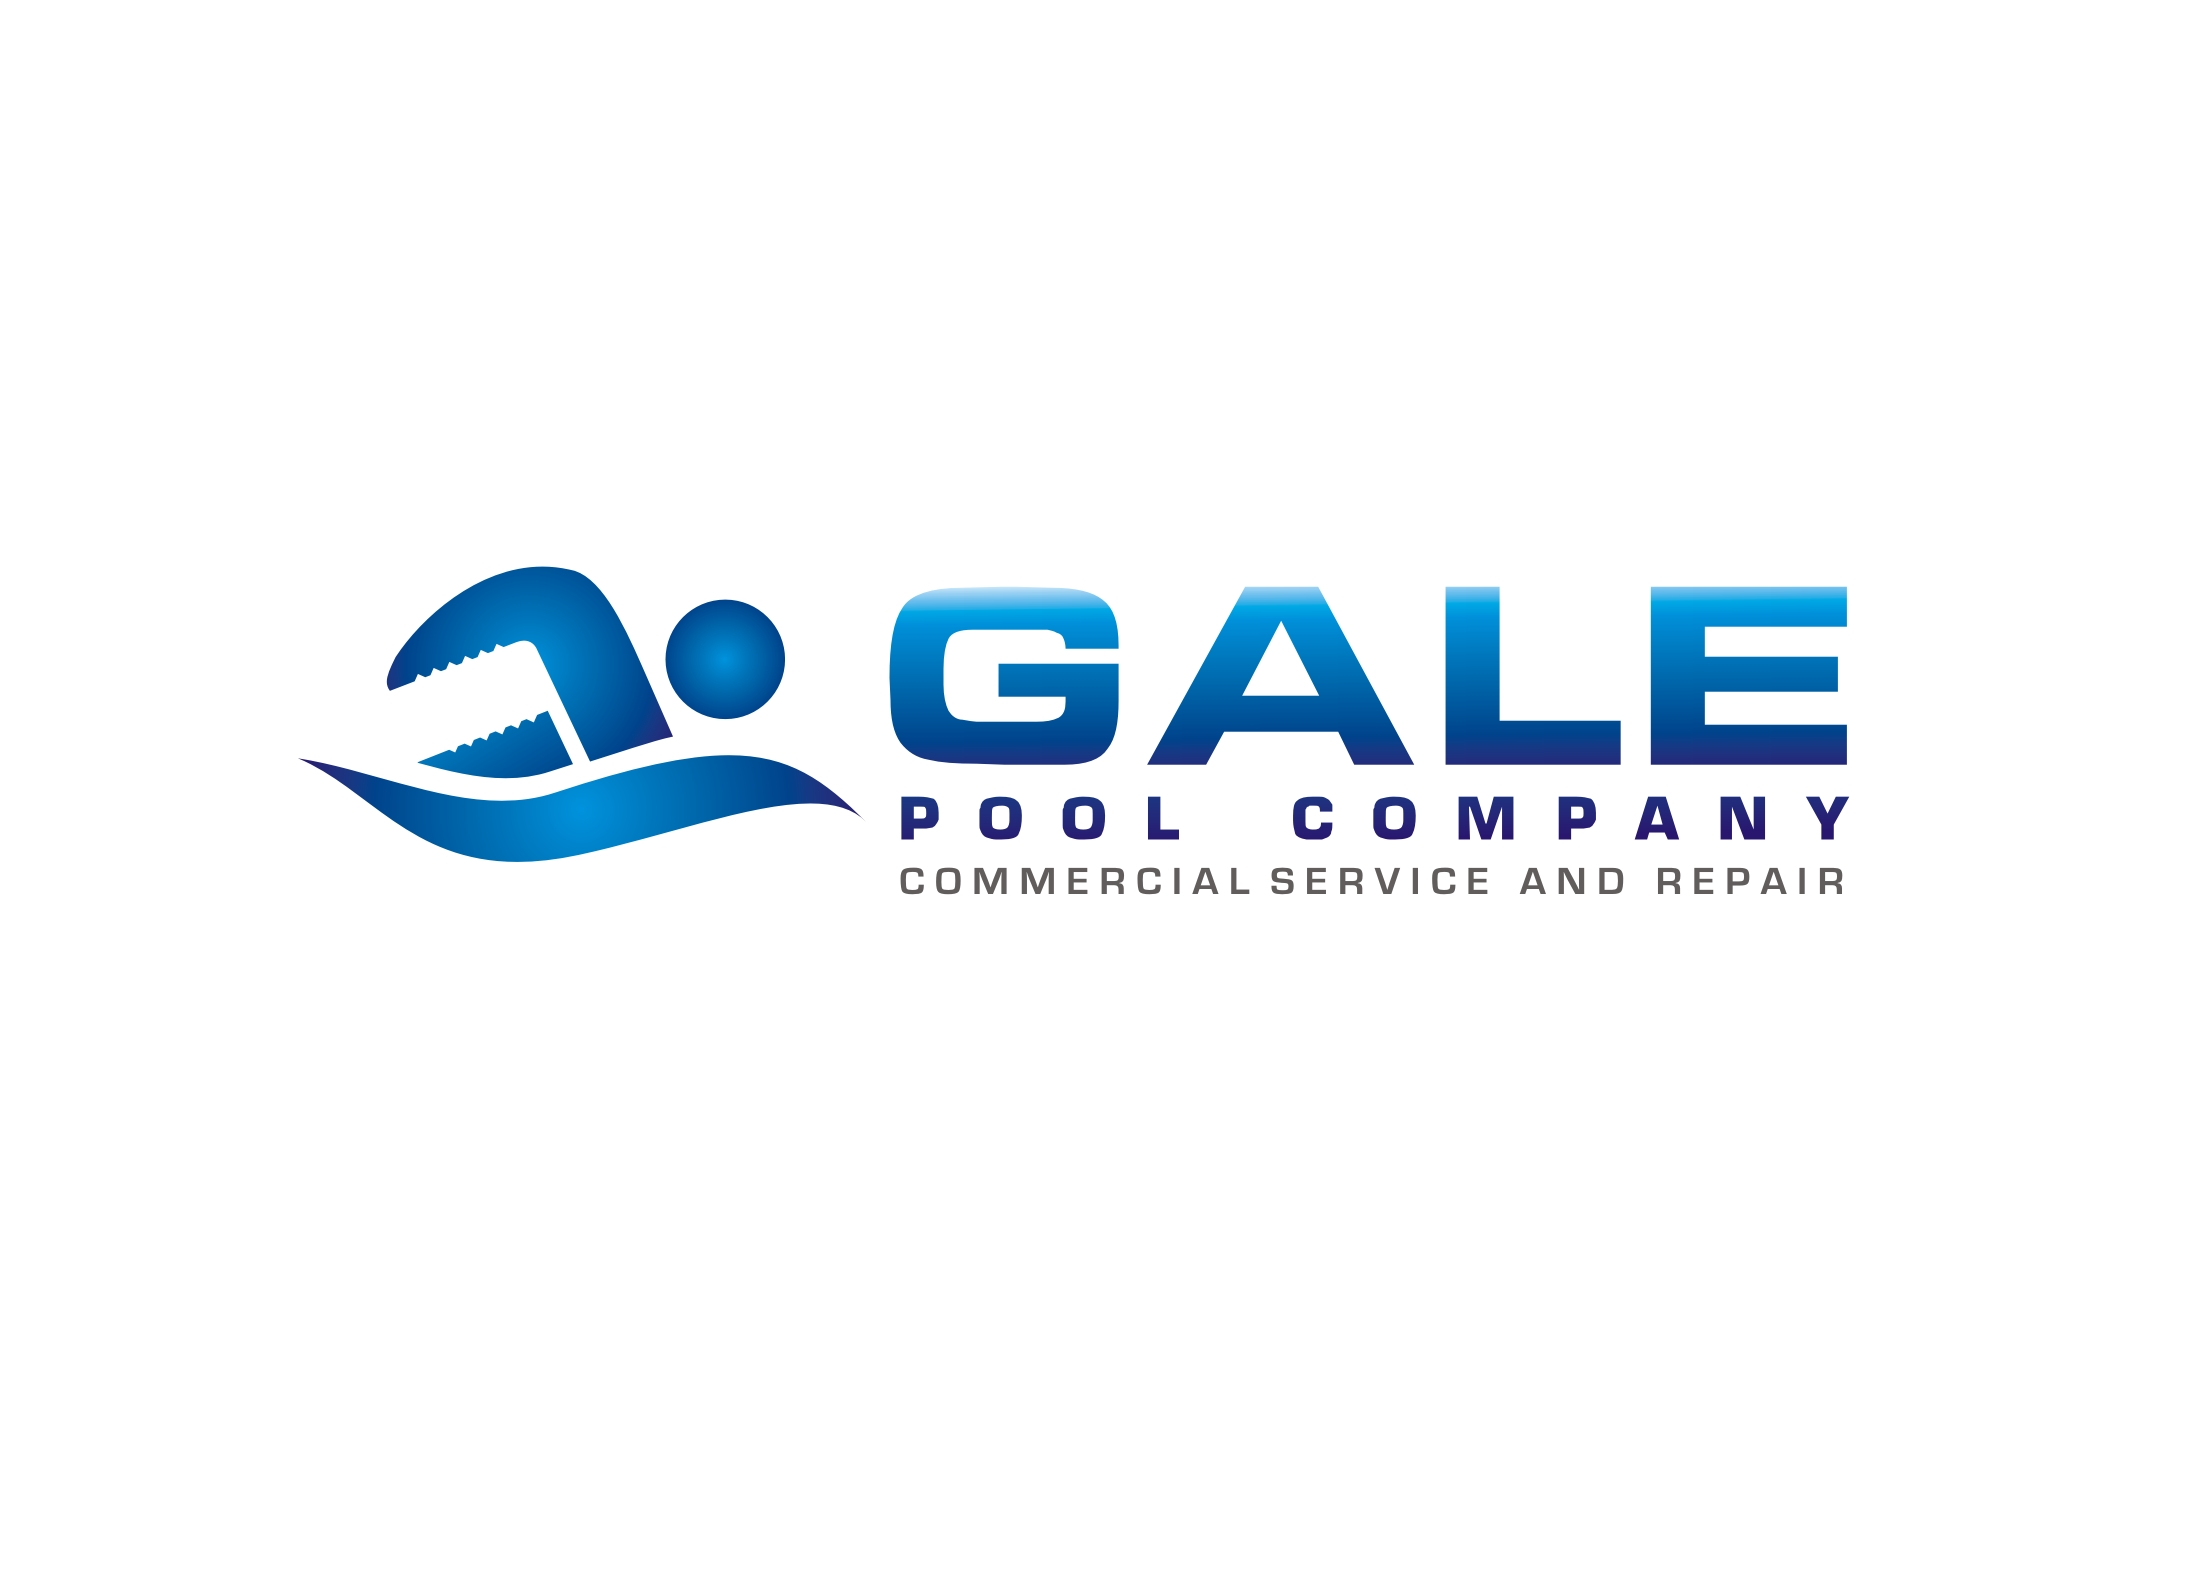 Logo Design by Zdravko Krulj - Entry No. 119 in the Logo Design Contest Imaginative Logo Design for Gale Pool Company.